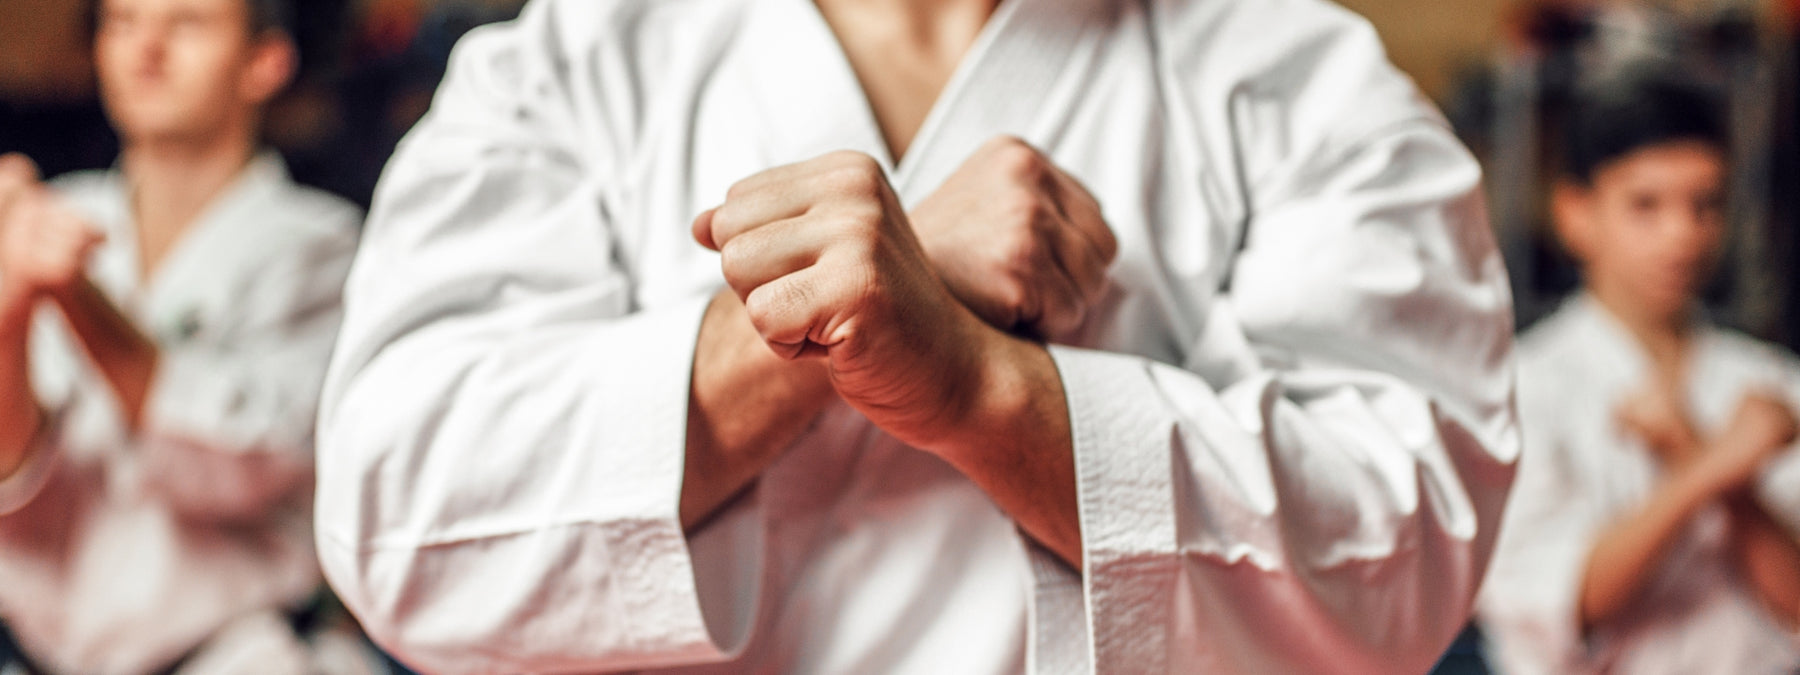 Five Tips for the Beginning Brazilian Jiu-Jitsu Practitioner